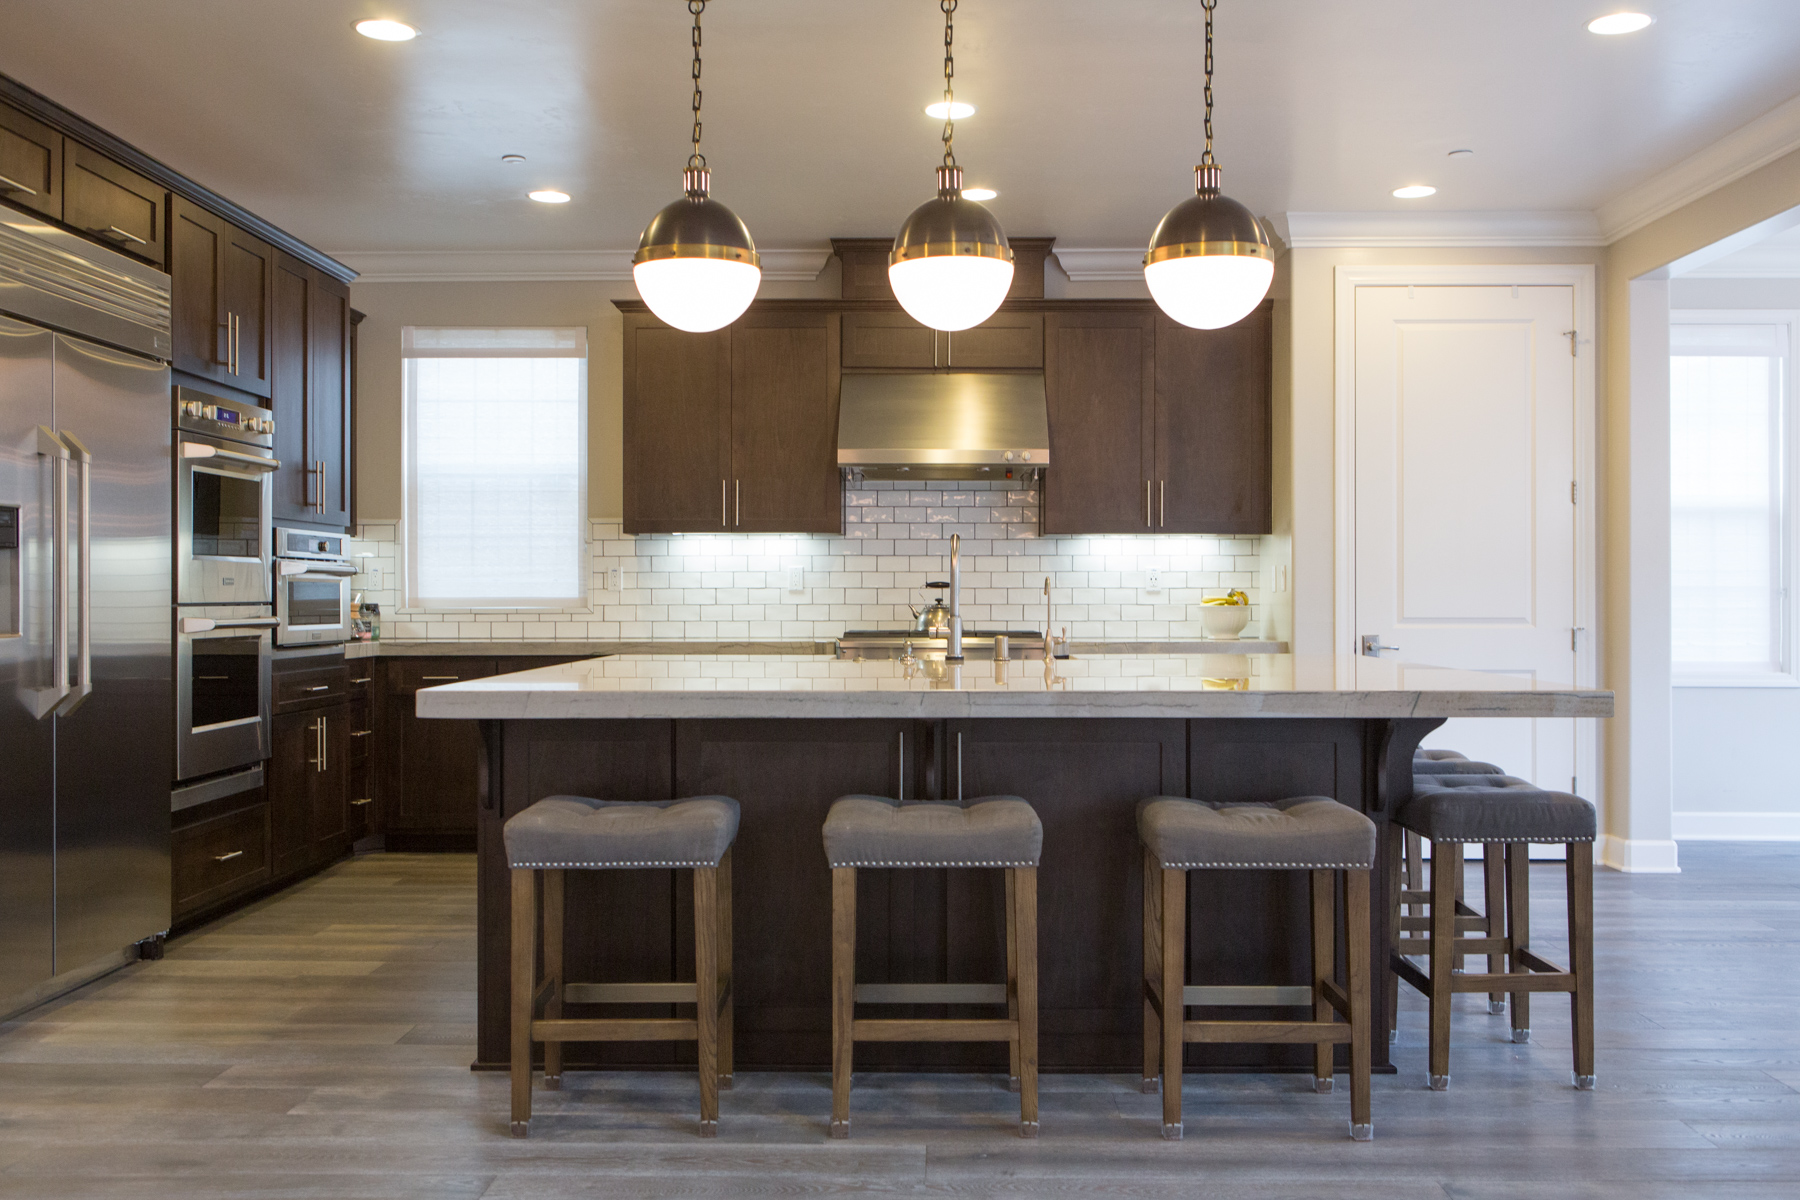 Builder Home Chic Upgrade Simply Stunning Spaces